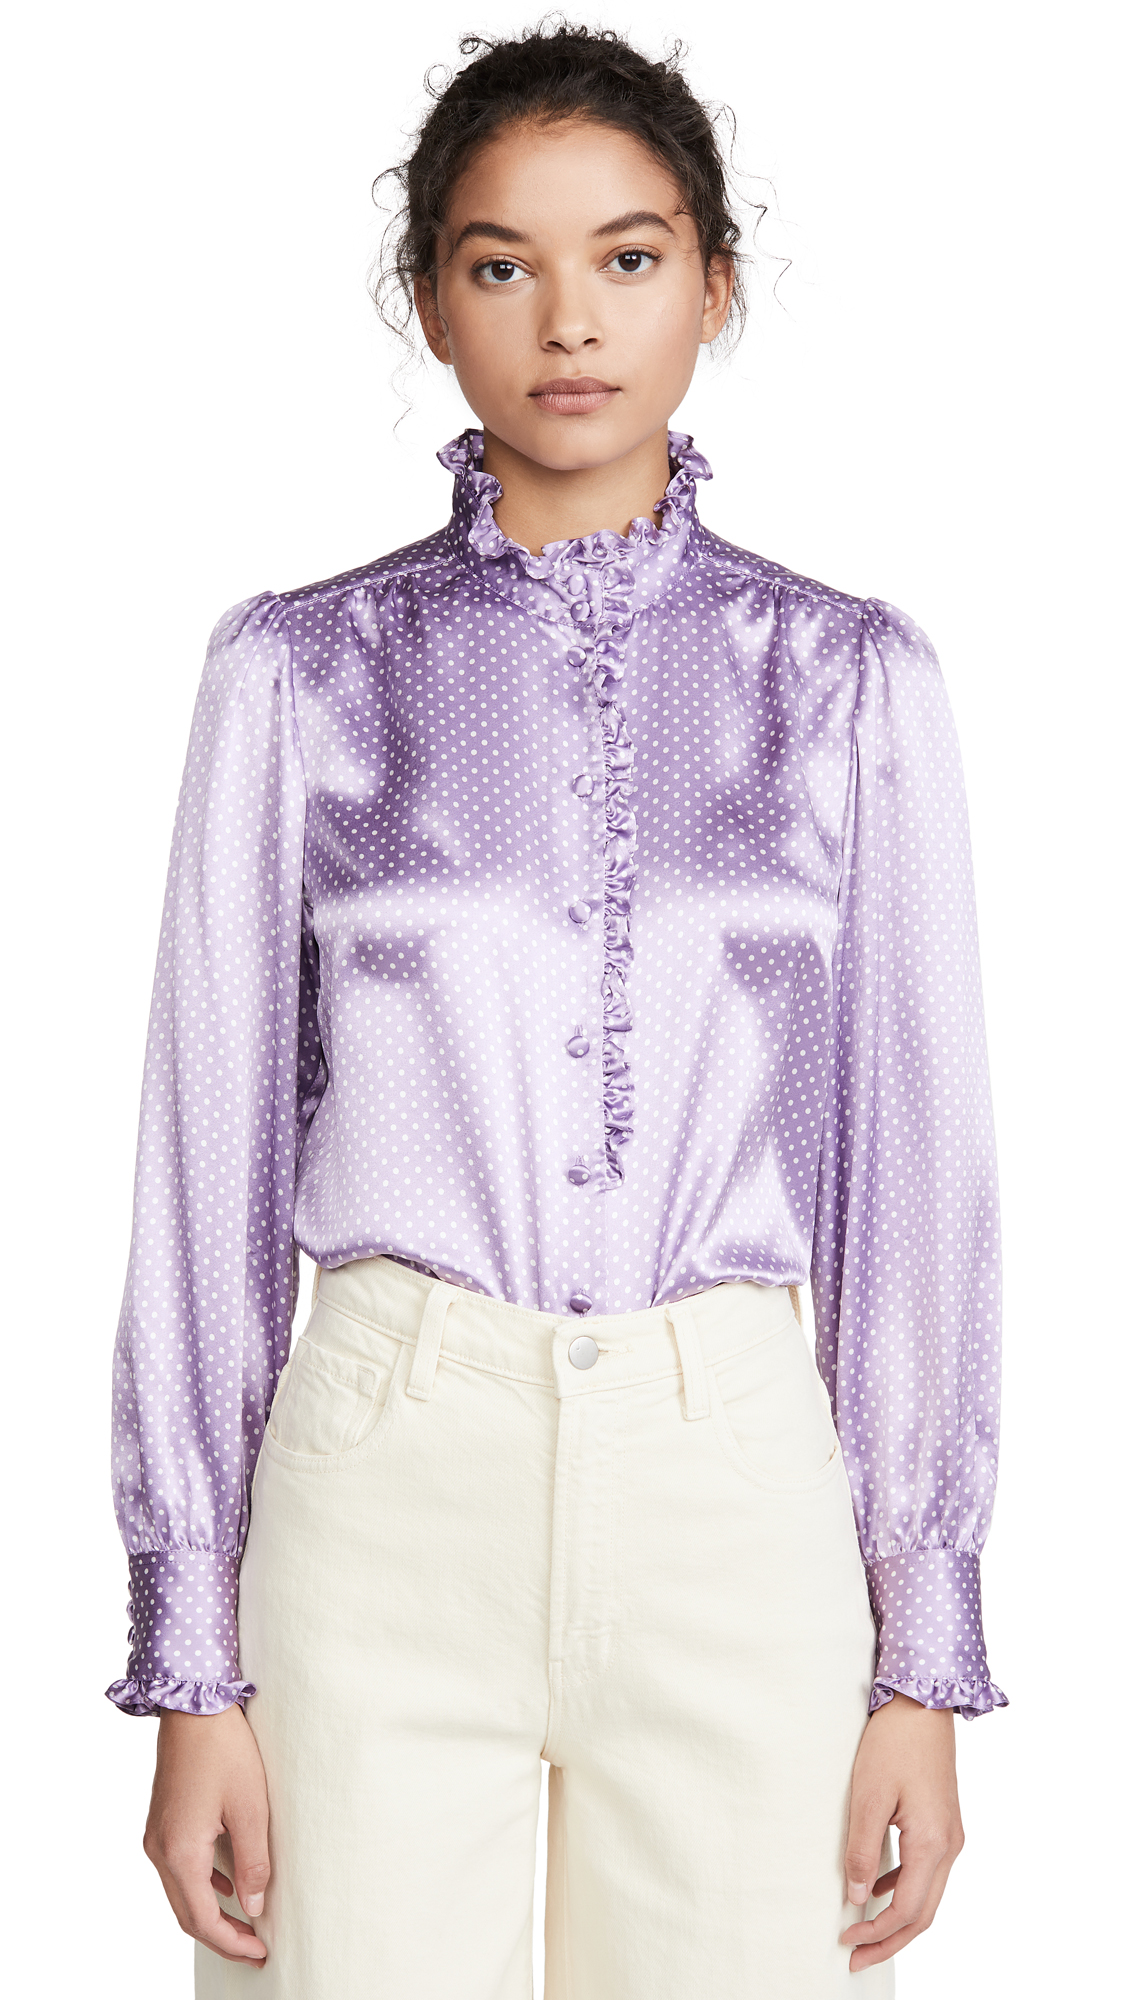 Runway Marc Jacobs Spot Blouse With Ruffle At Collar & Cuff - 30% Off Sale